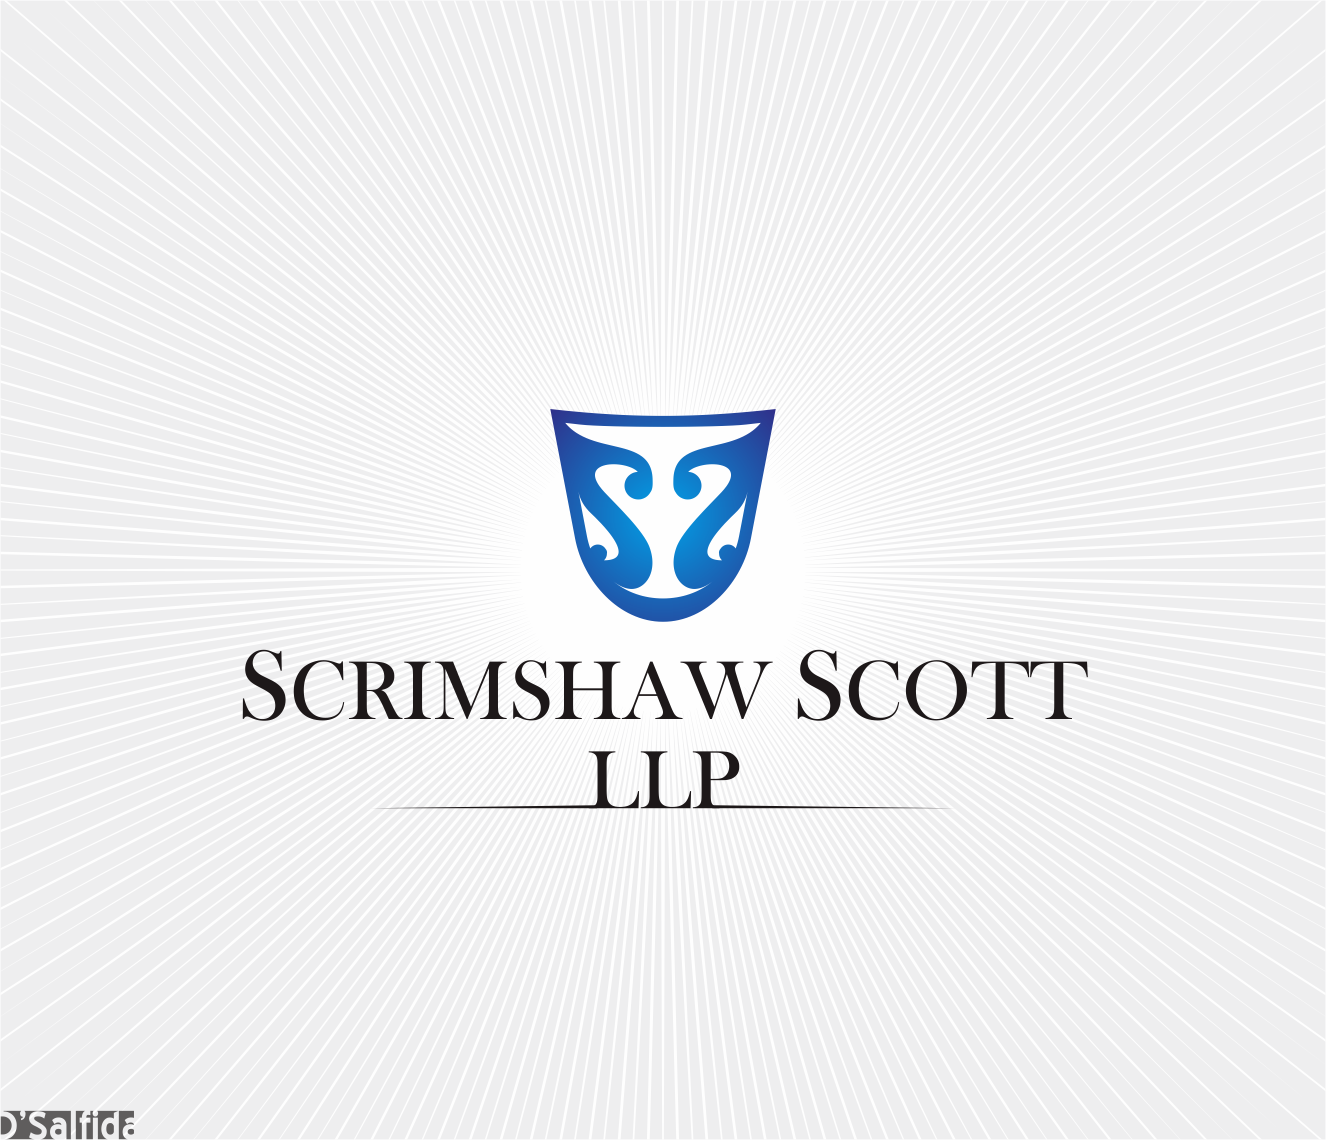 Logo Design by Armada Jamaluddin - Entry No. 114 in the Logo Design Contest Creative Logo Design for Scrimshaw Scott LLP.